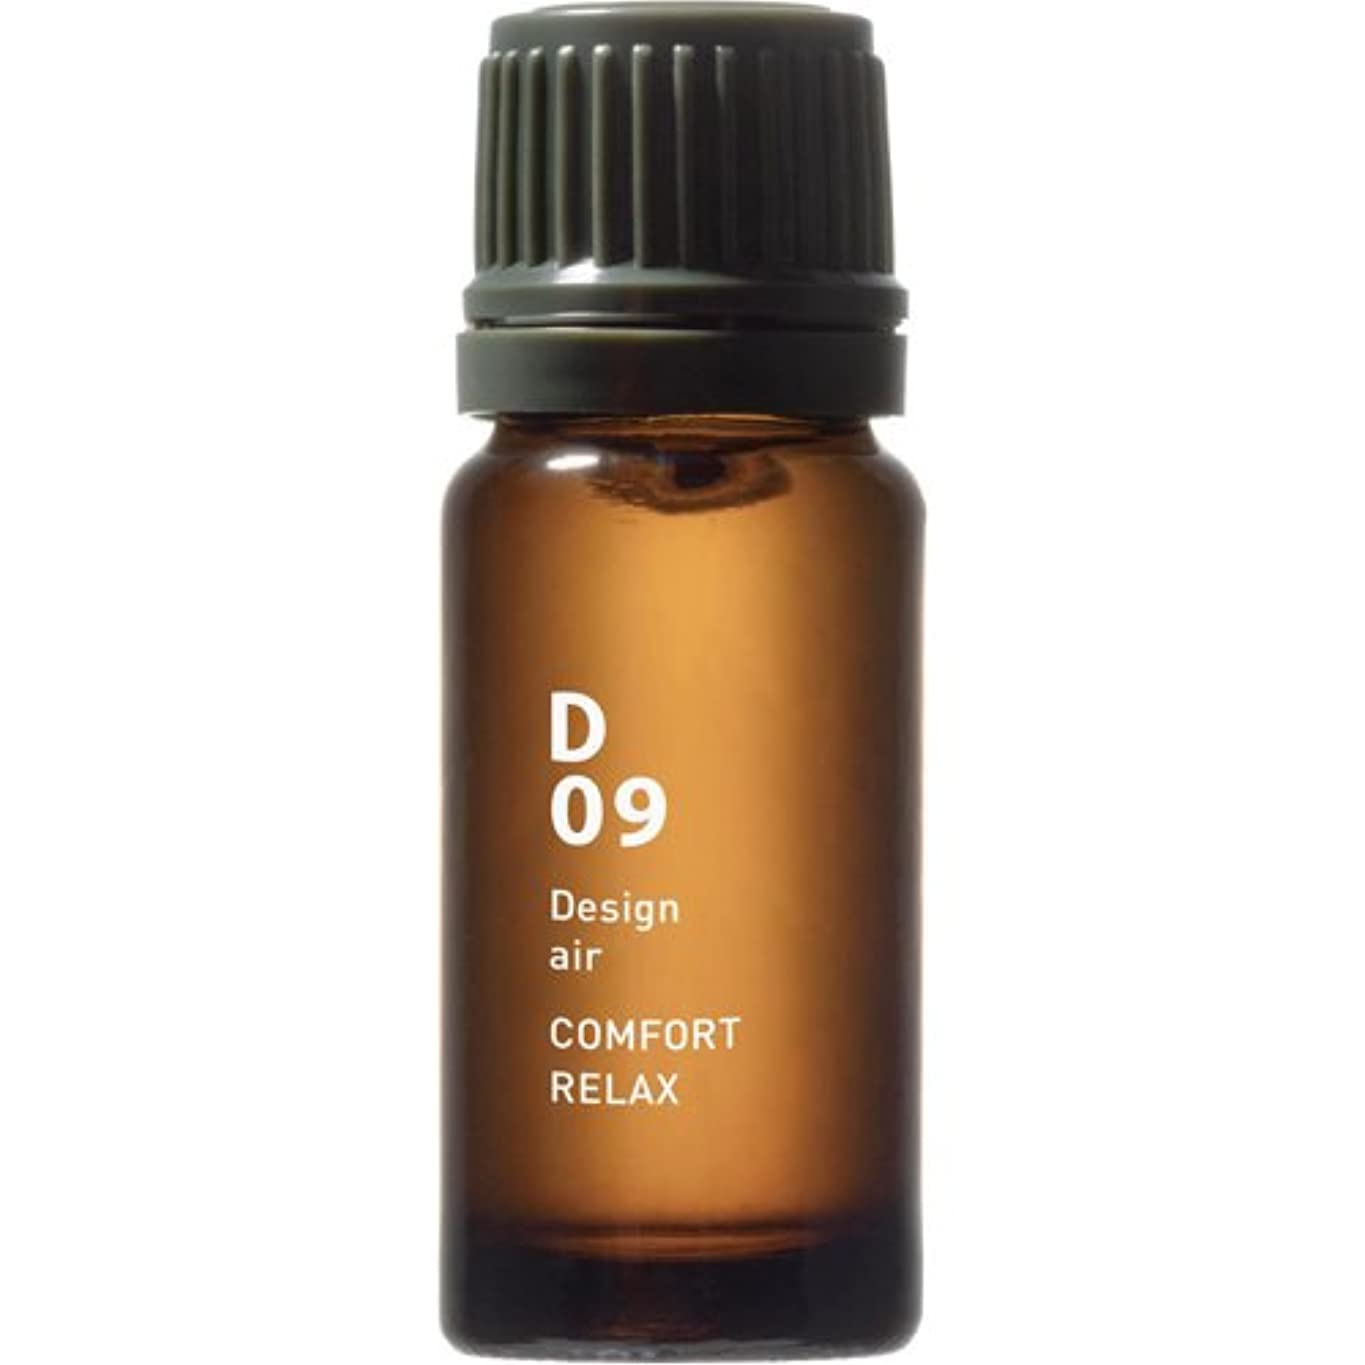 名詞フィード過ちD09 COMFORT RELAX Design air 10ml